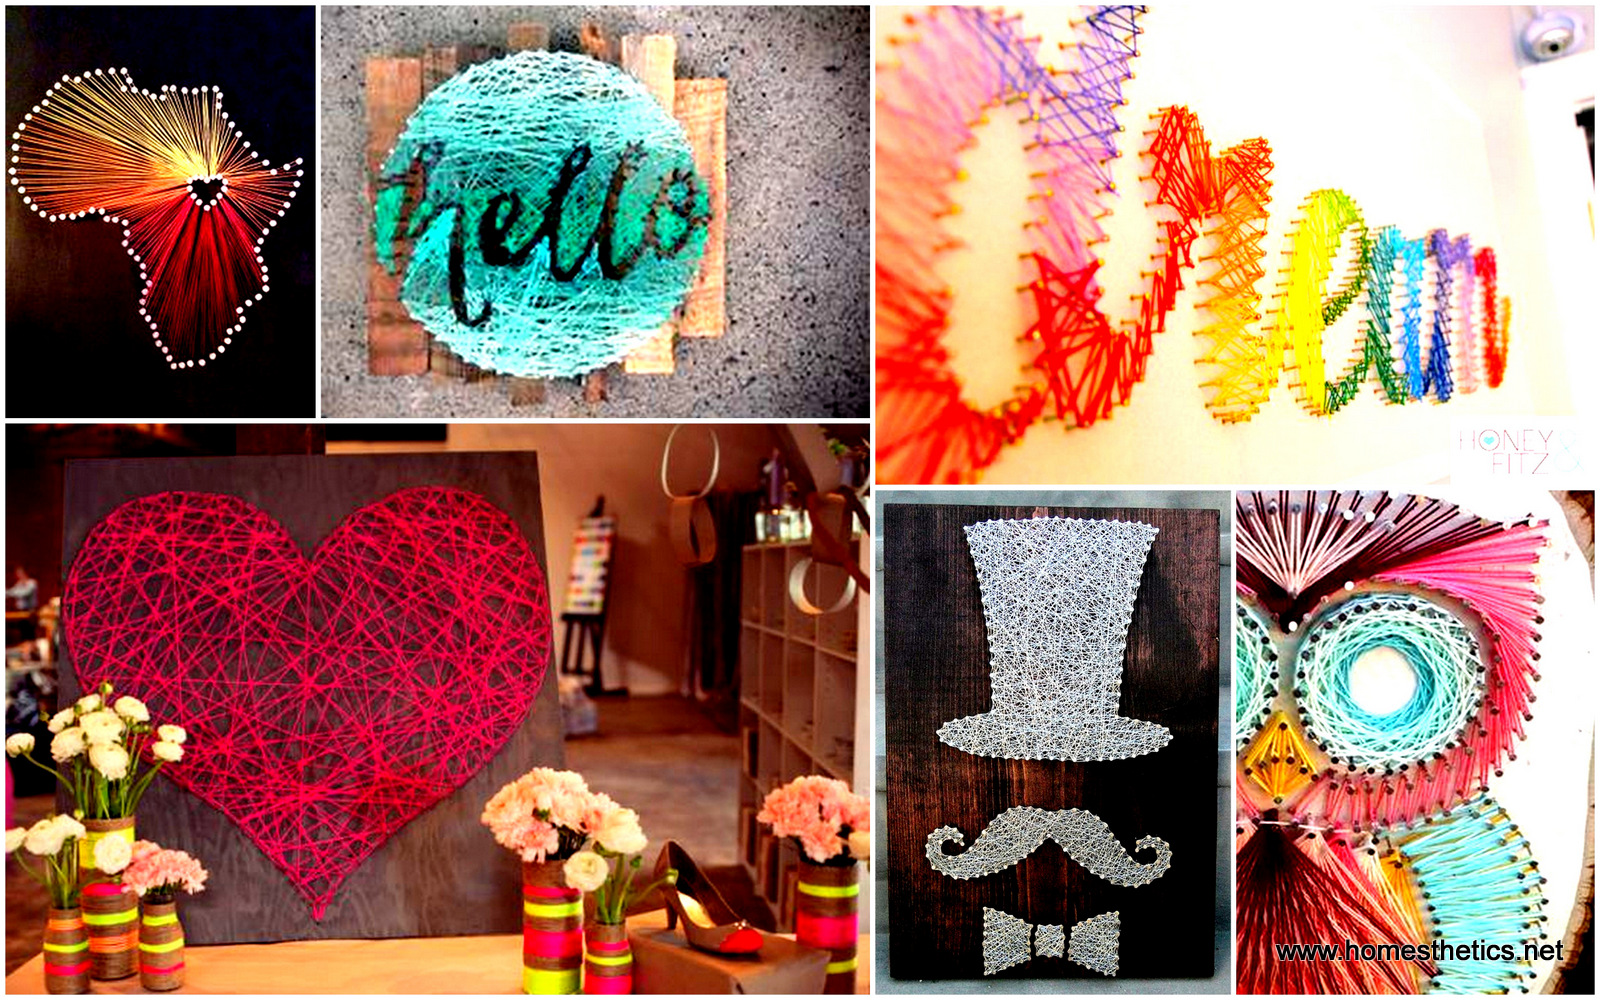 28 diy thread and nails string art projects that will for Home decor arts and crafts ideas